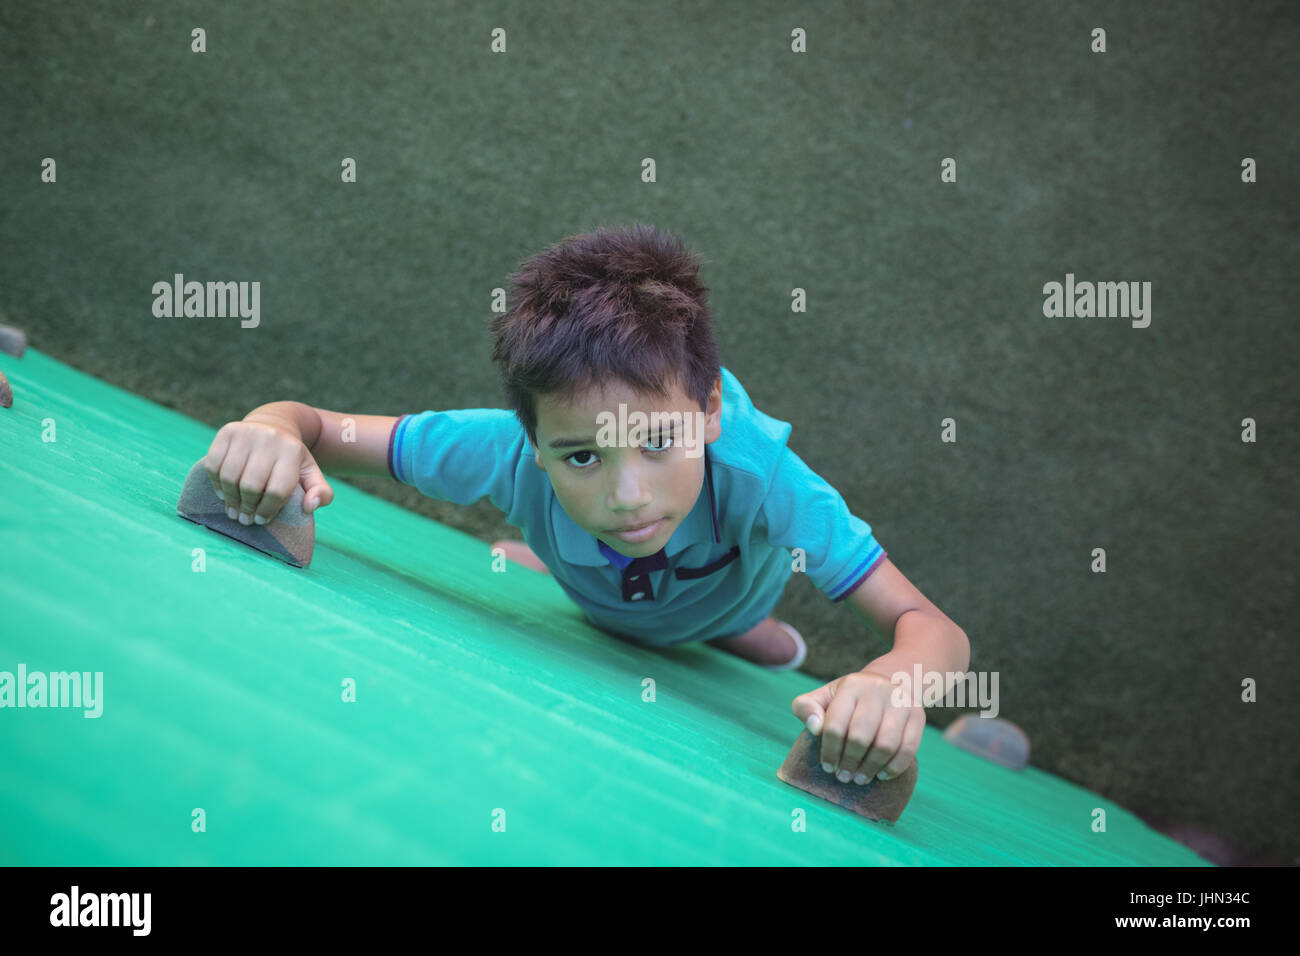 High angle portrait of boy climbing green wall - Stock Image